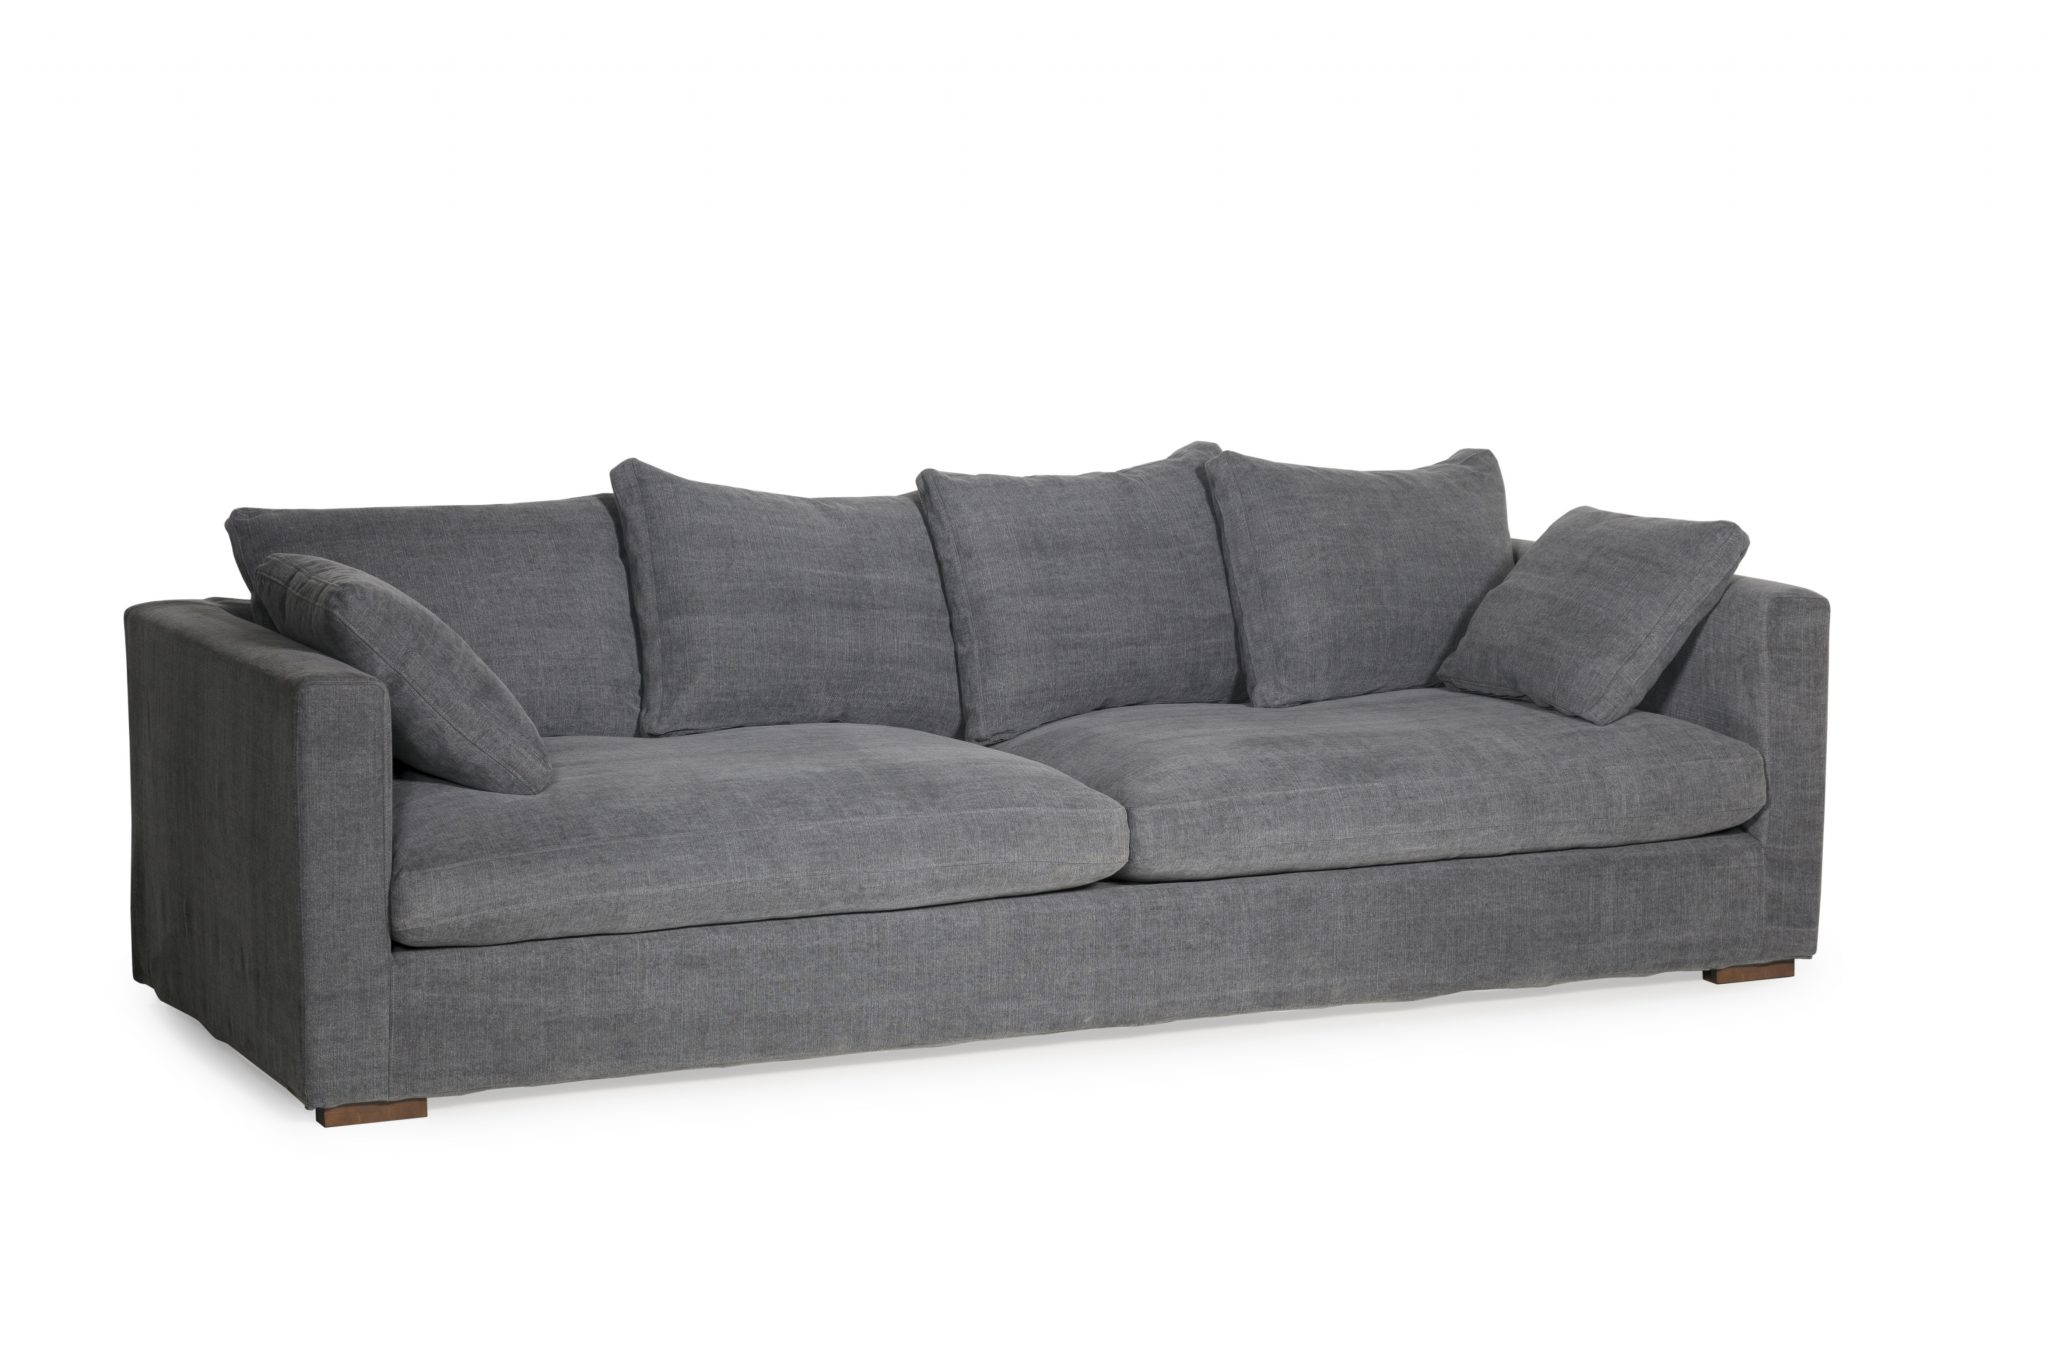 Confortable Sofa Ashley Furniture Sectional Sofas Plus